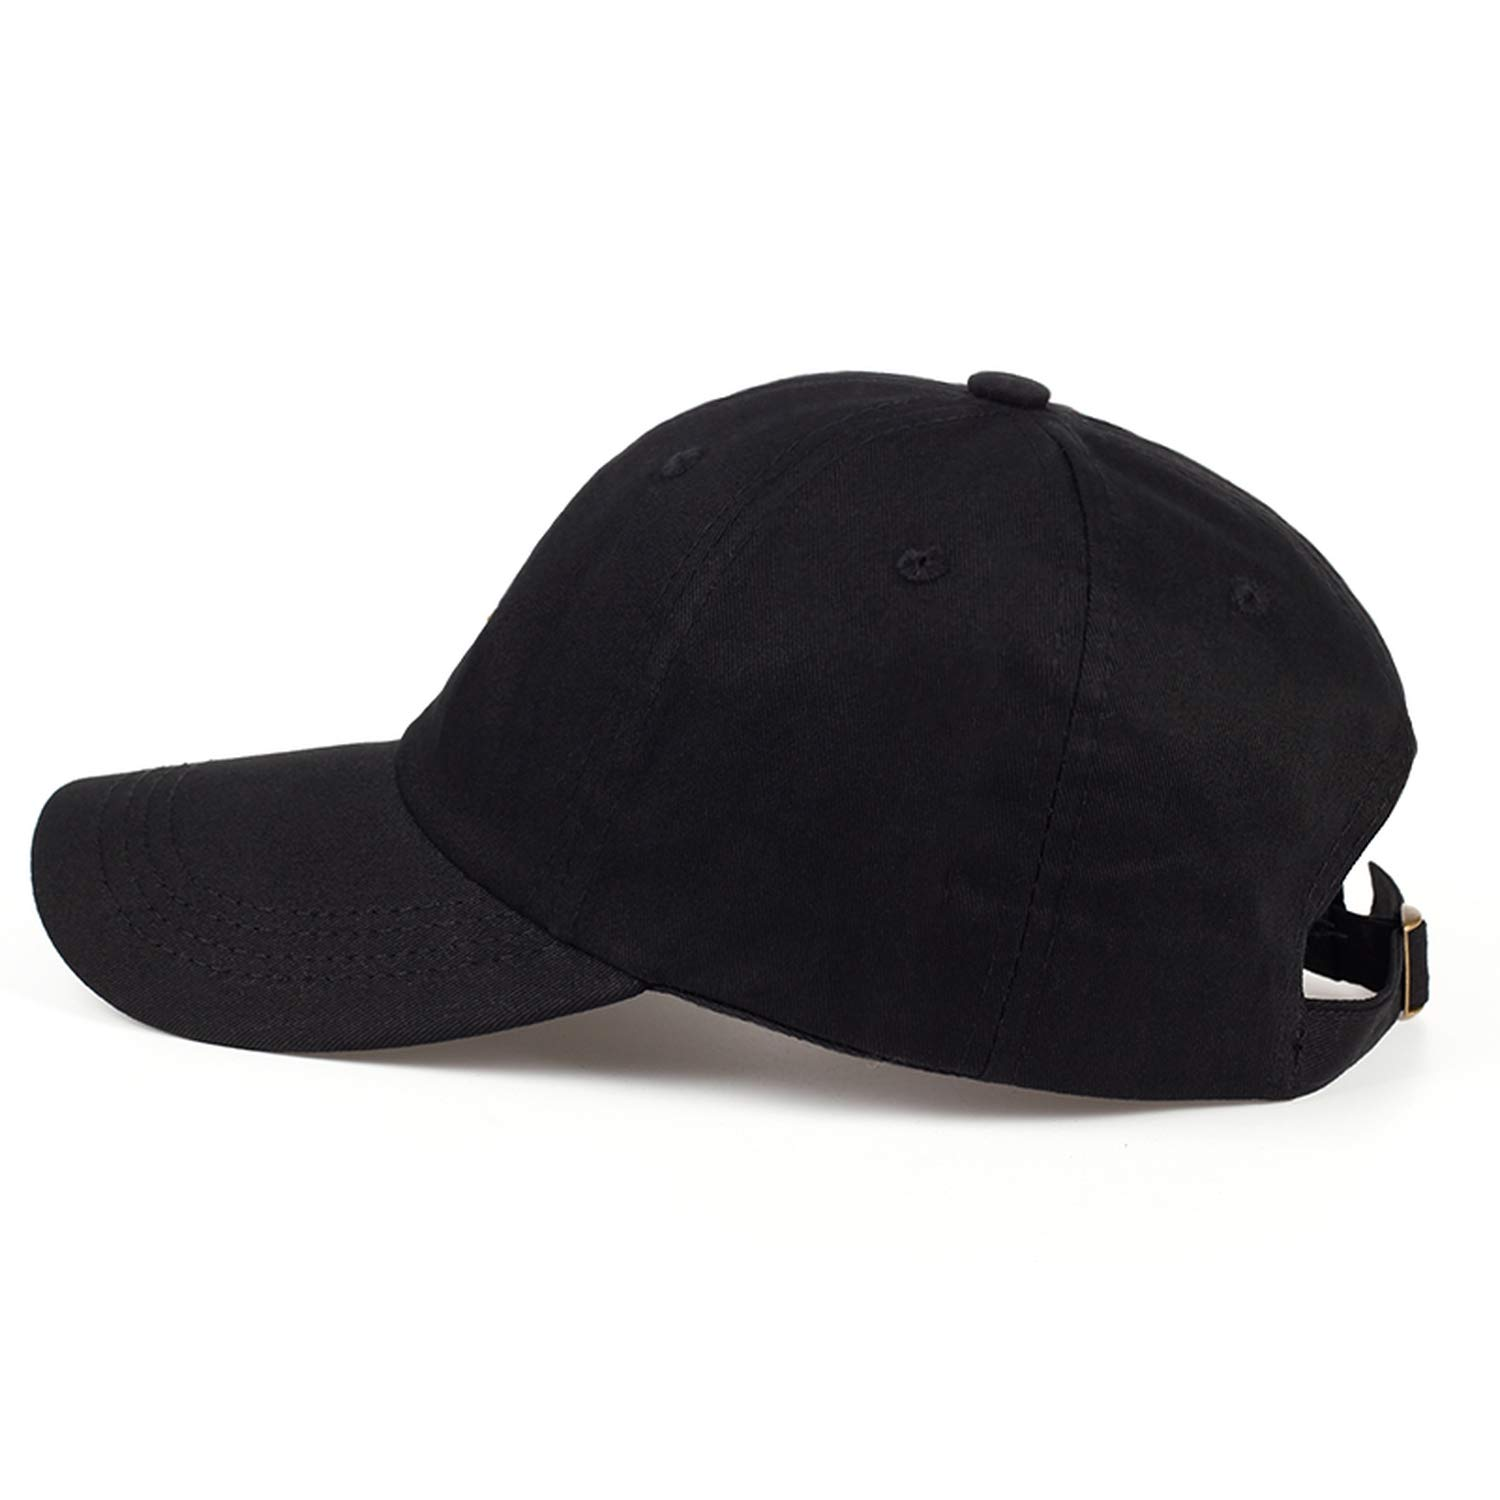 New Mood for Love Letter Embroidery Baseball Cap Cotton hat Fashio can Adjust Adult hat Hip-hop hat